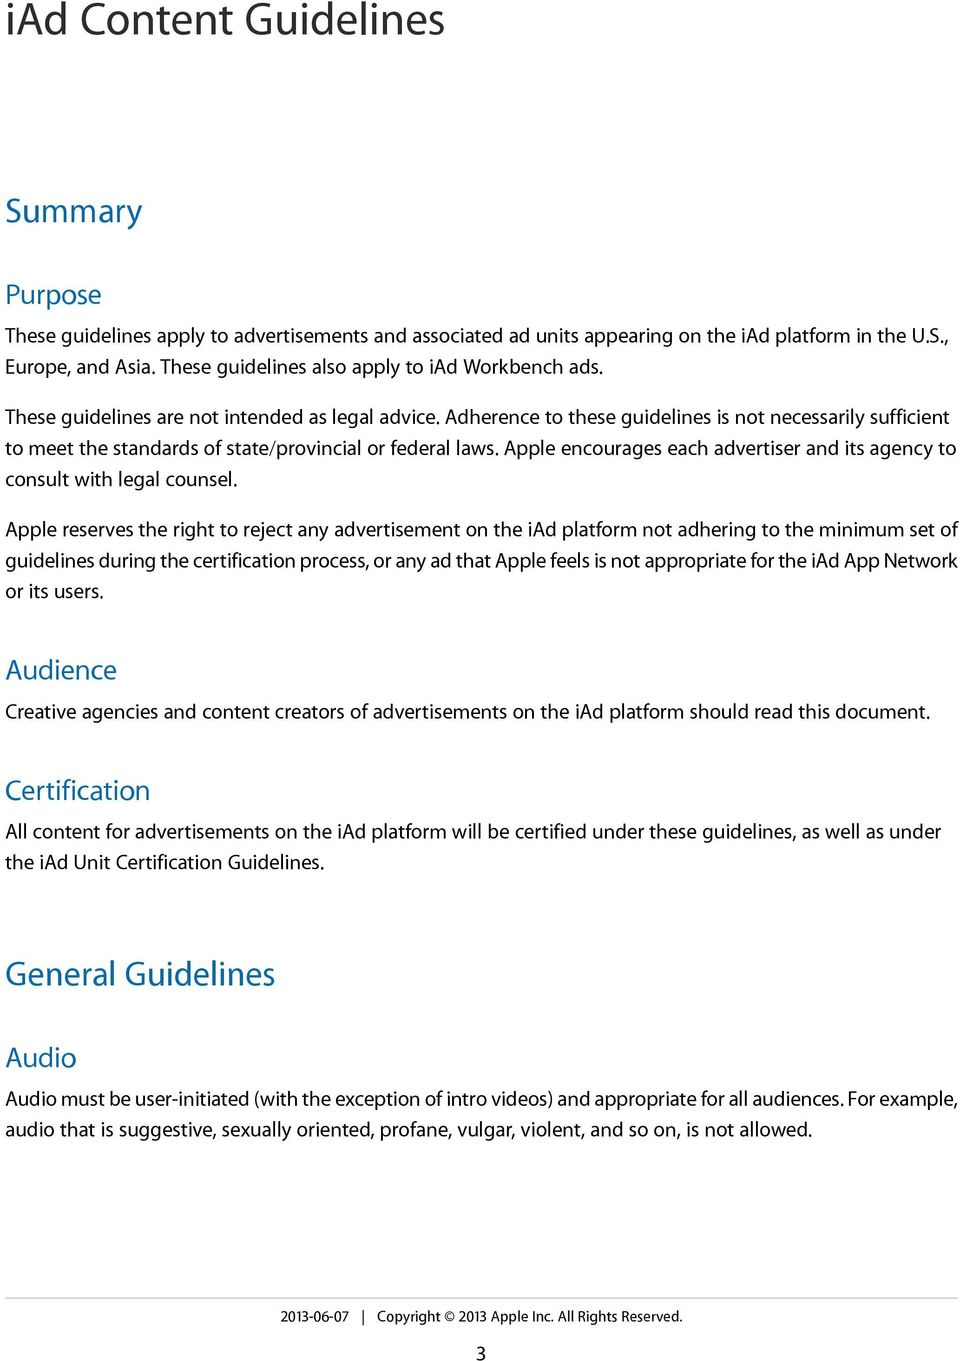 Apple encourages each advertiser and its agency to consult with legal counsel.